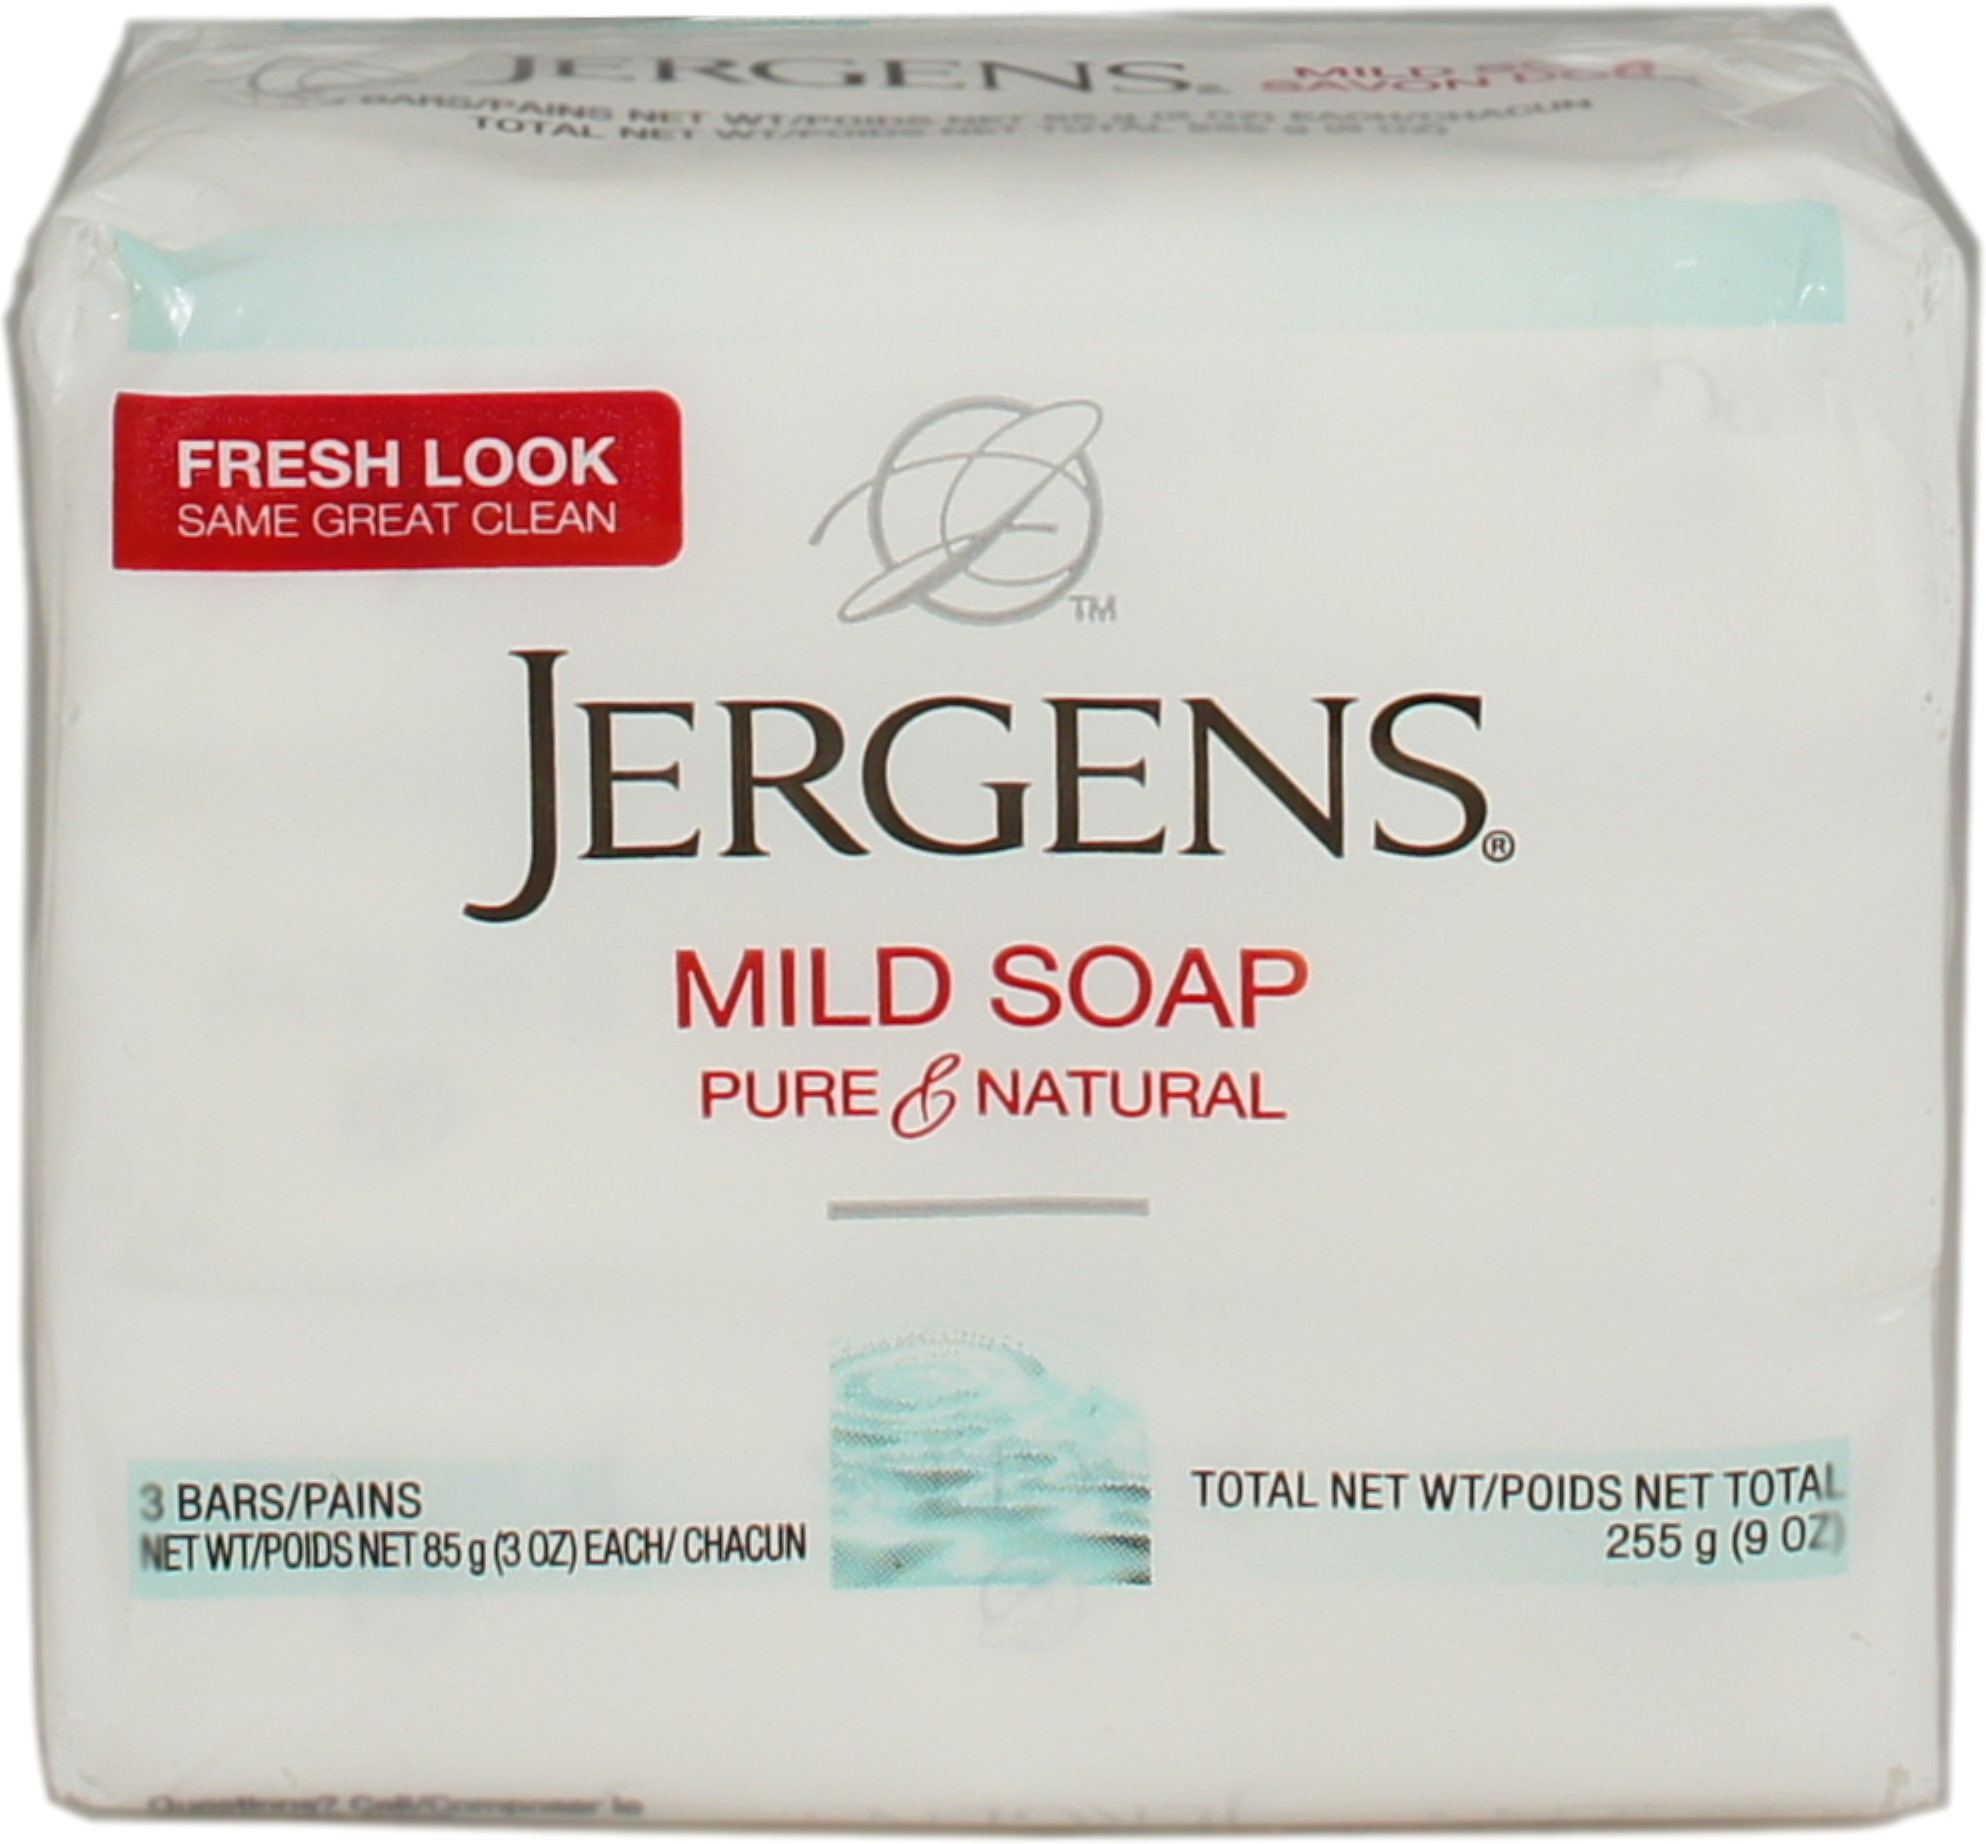 Jergens Mild Soap 9 oz (Pack of 3)